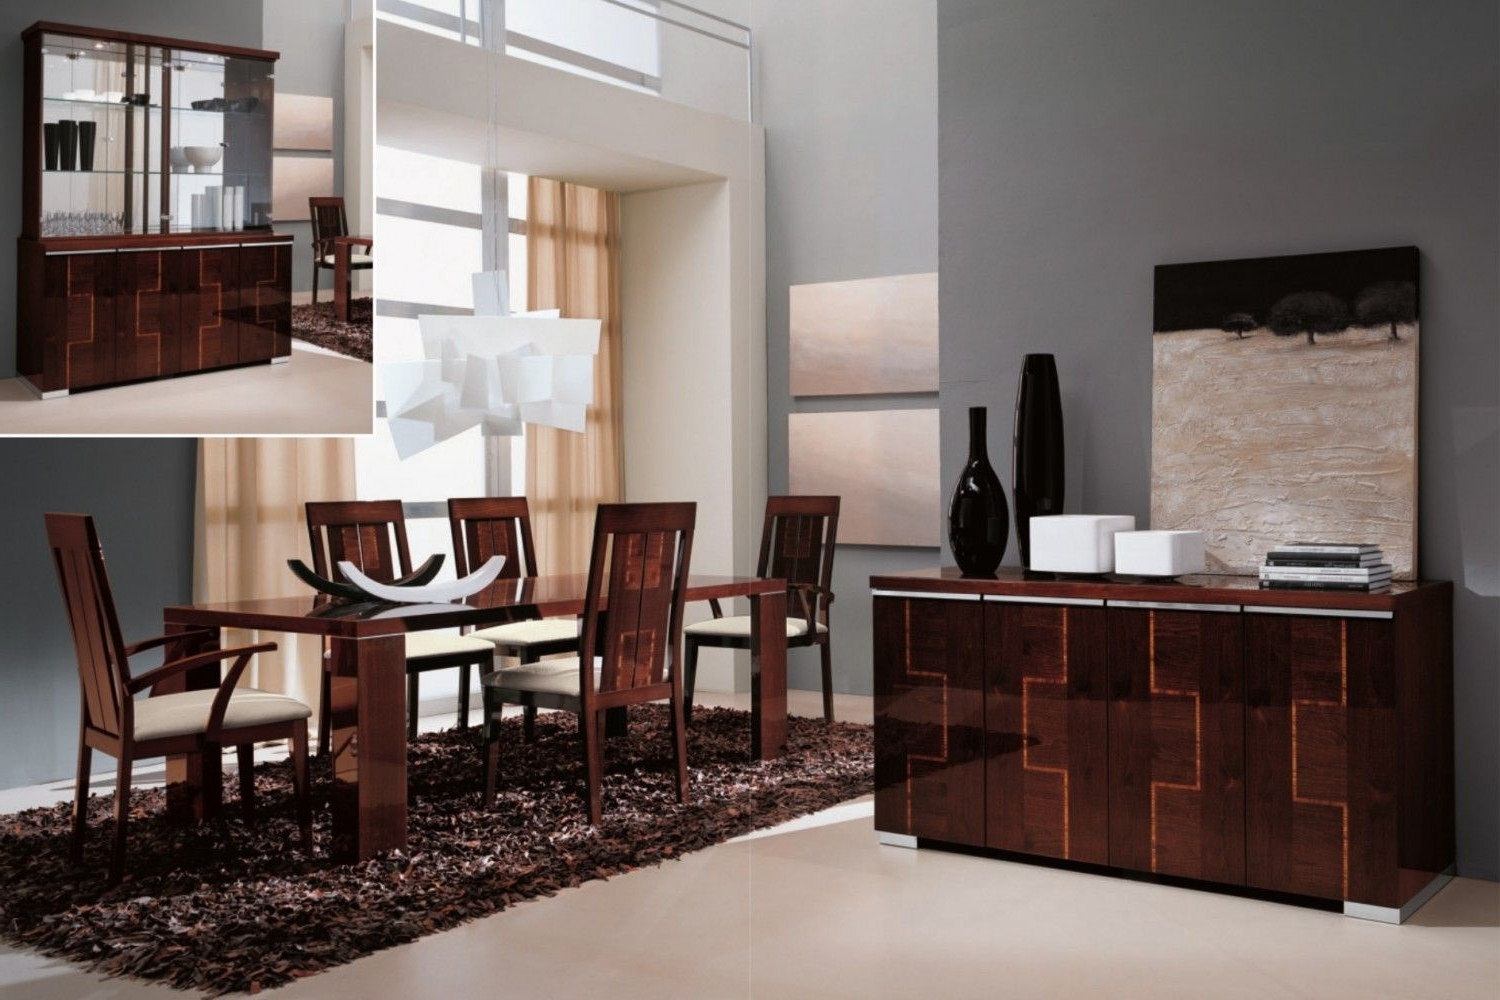 Pisa Dining Tables For Fashionable Pisa Dining Room Collectionalf+Da Fre (View 10 of 25)